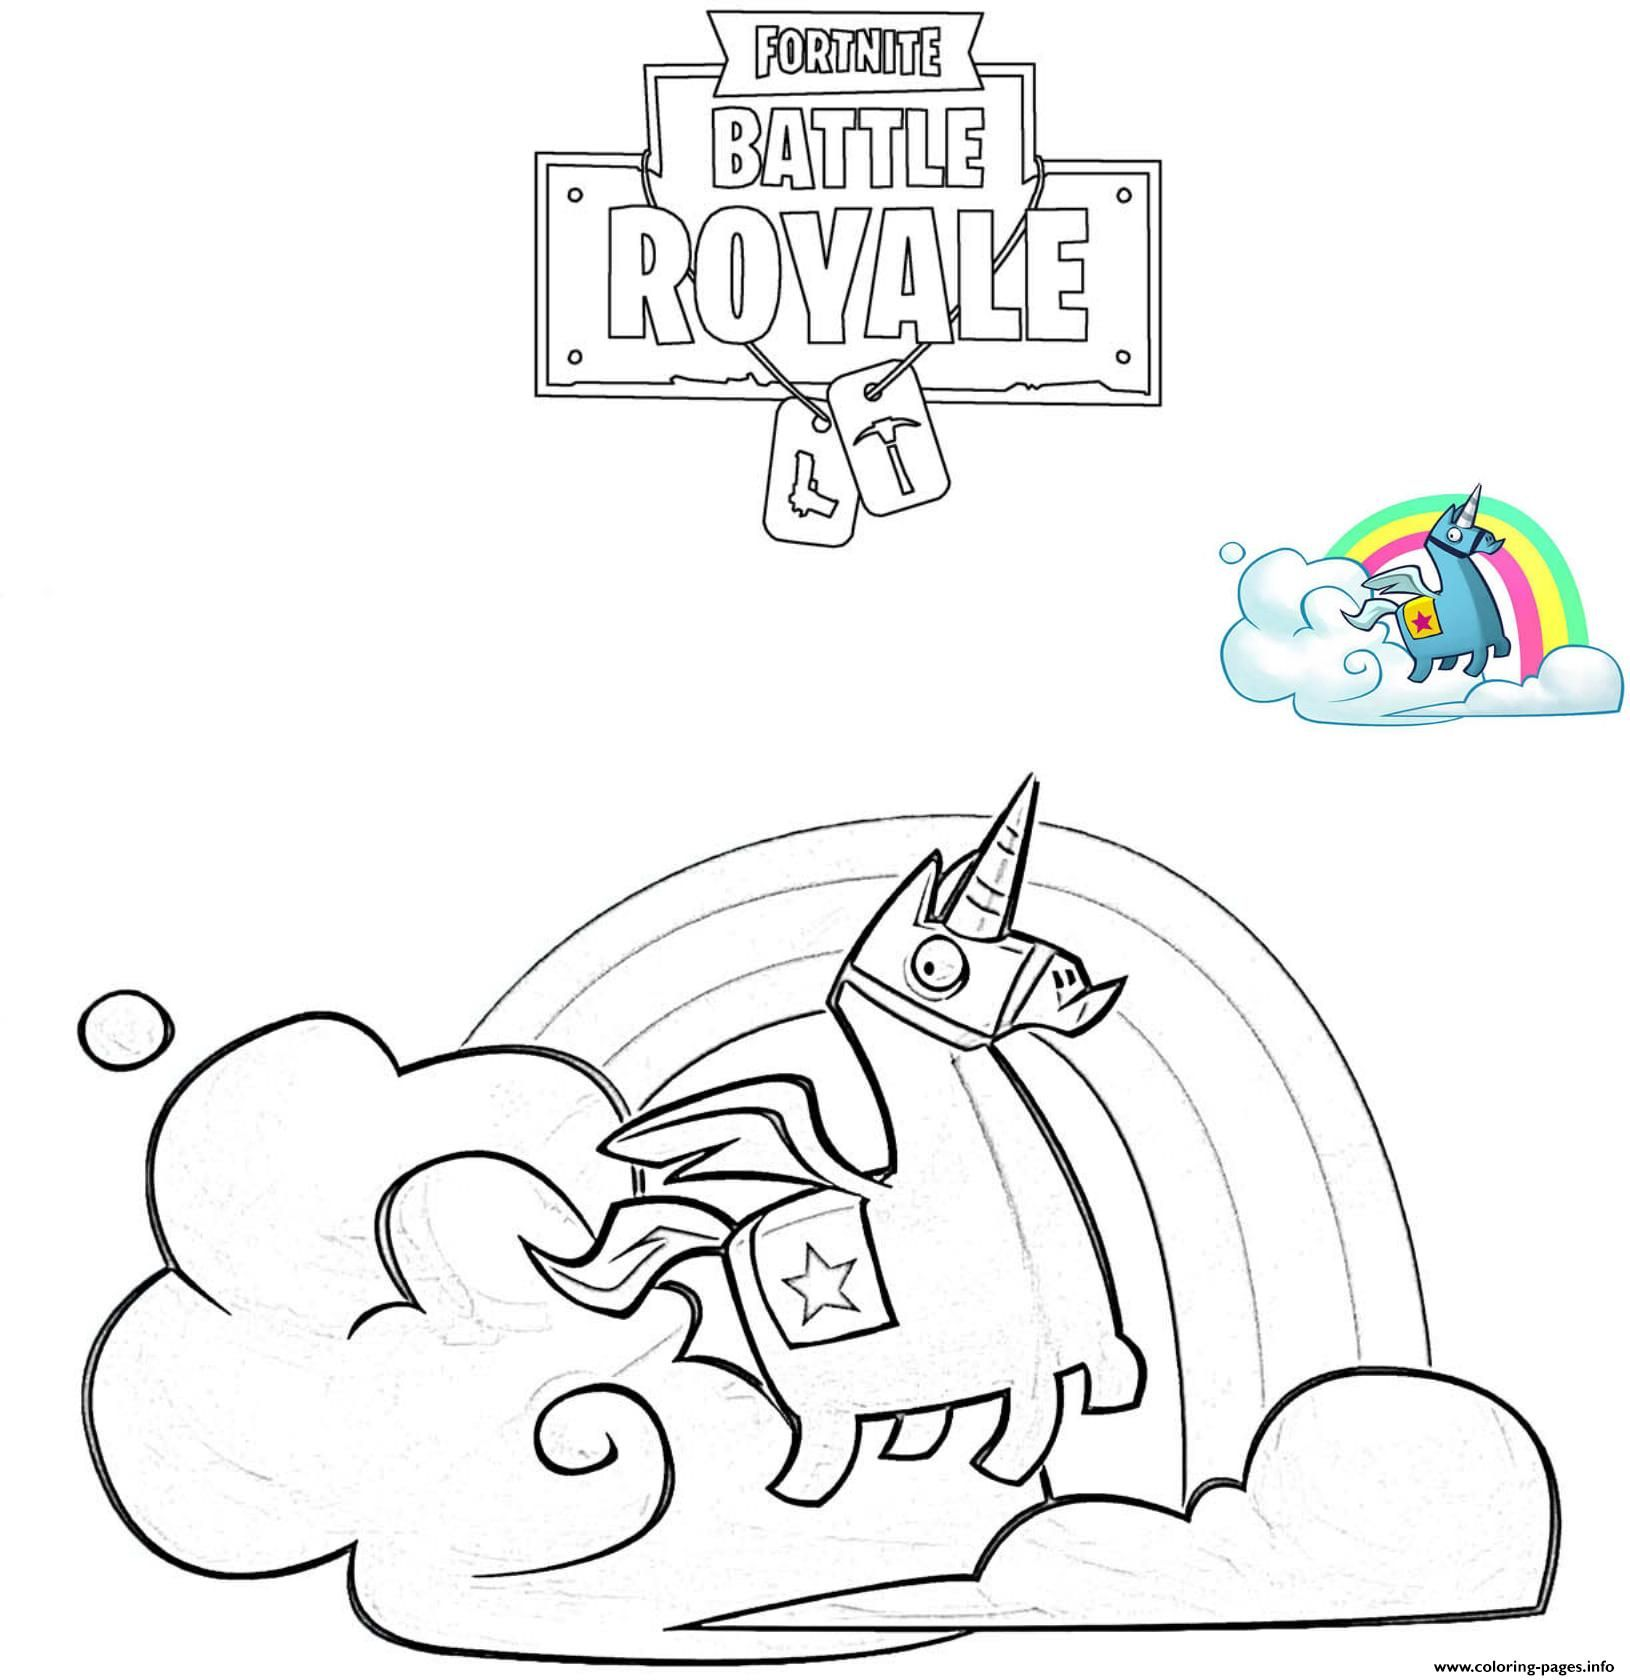 photo relating to Fortnite Coloring Pages Printable referred to as Print Brite Llama Fortnite coloring web pages Fortnite